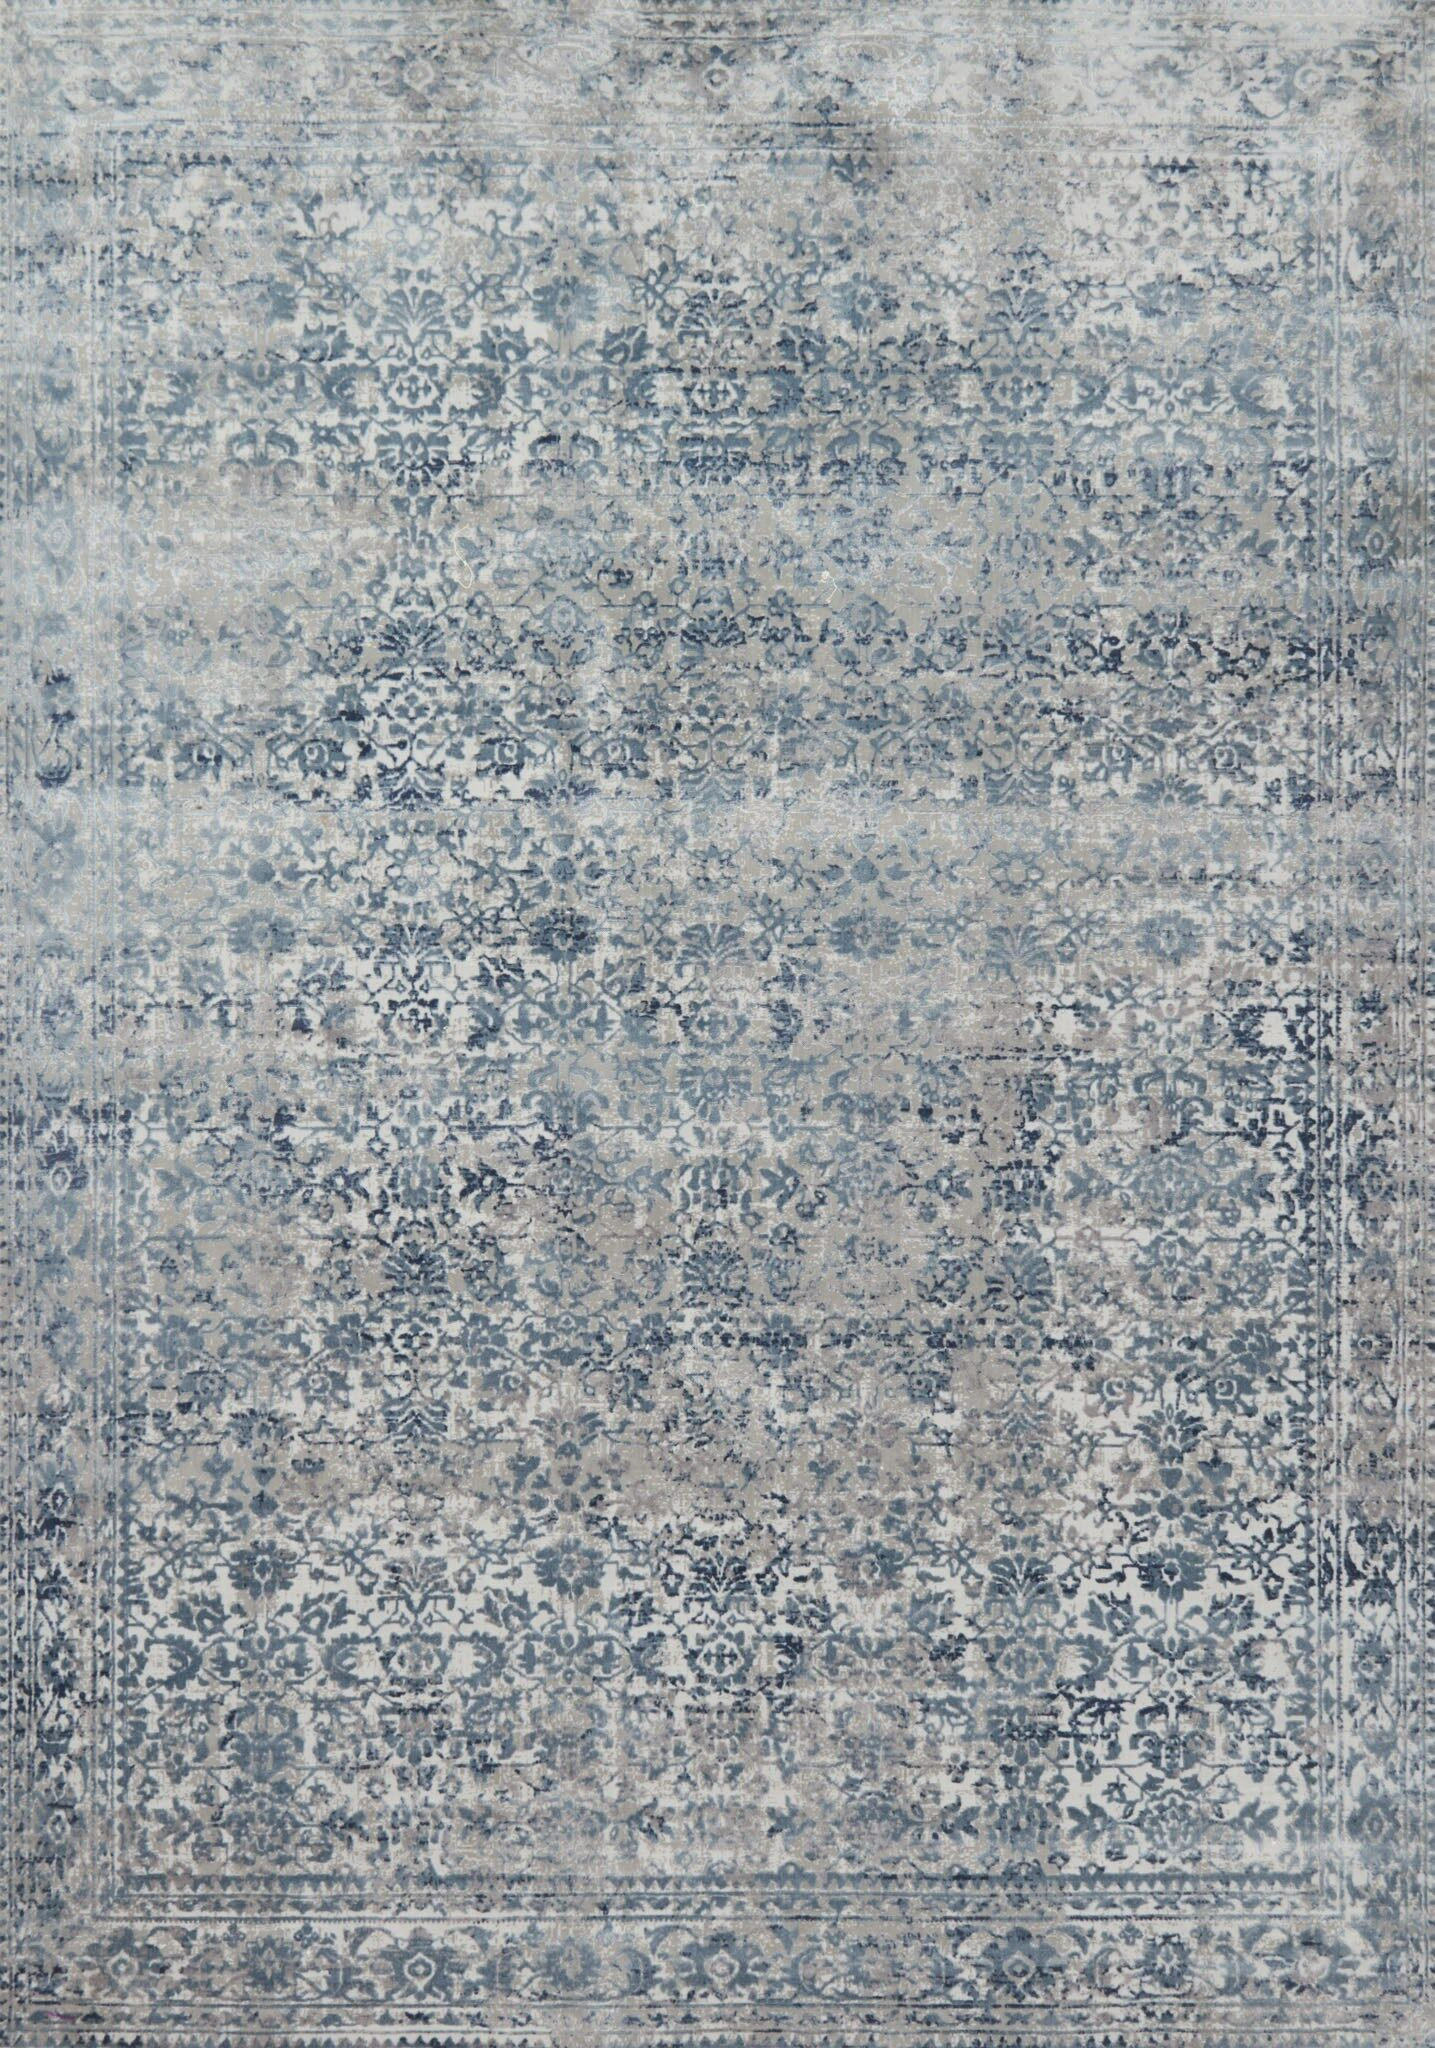 Jepsen Sky/Stone Area Rug Rug Size: Rectangle 9'6